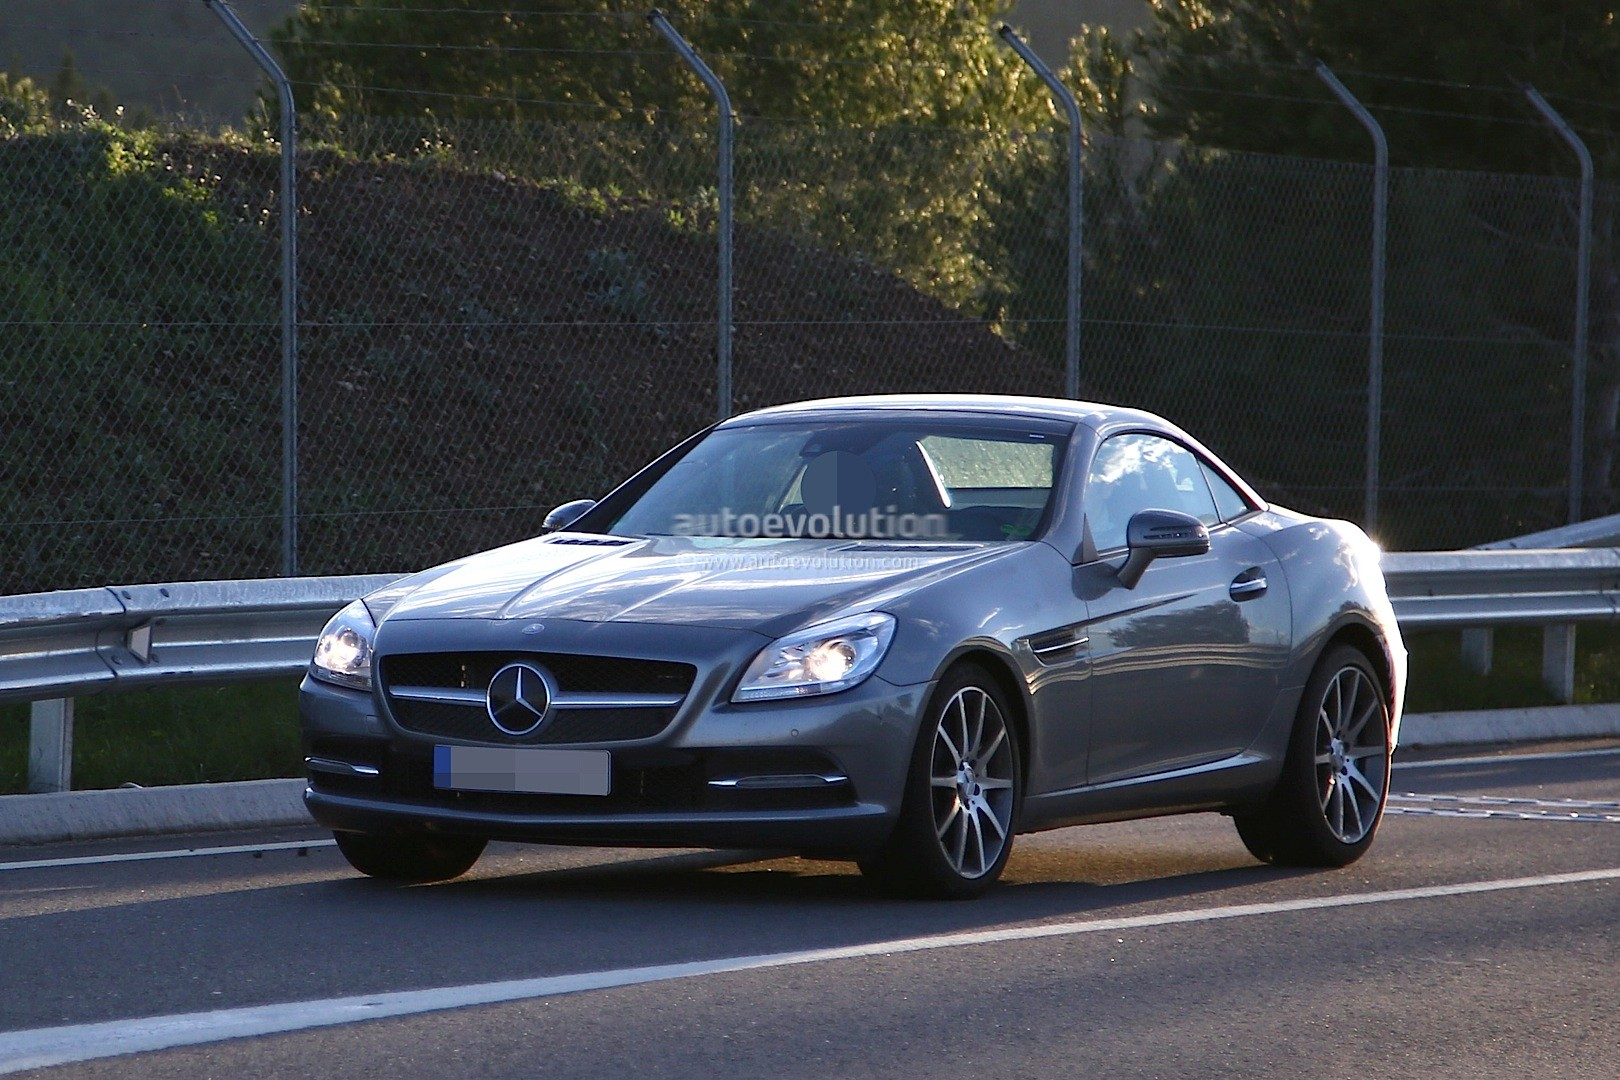 2015 - [Mercedes] SLC (ex-SLK) [R172] 2016-mercedes-benz-slc-is-a-mid-cycle-facelift-for-the-slk-photo-gallery_5